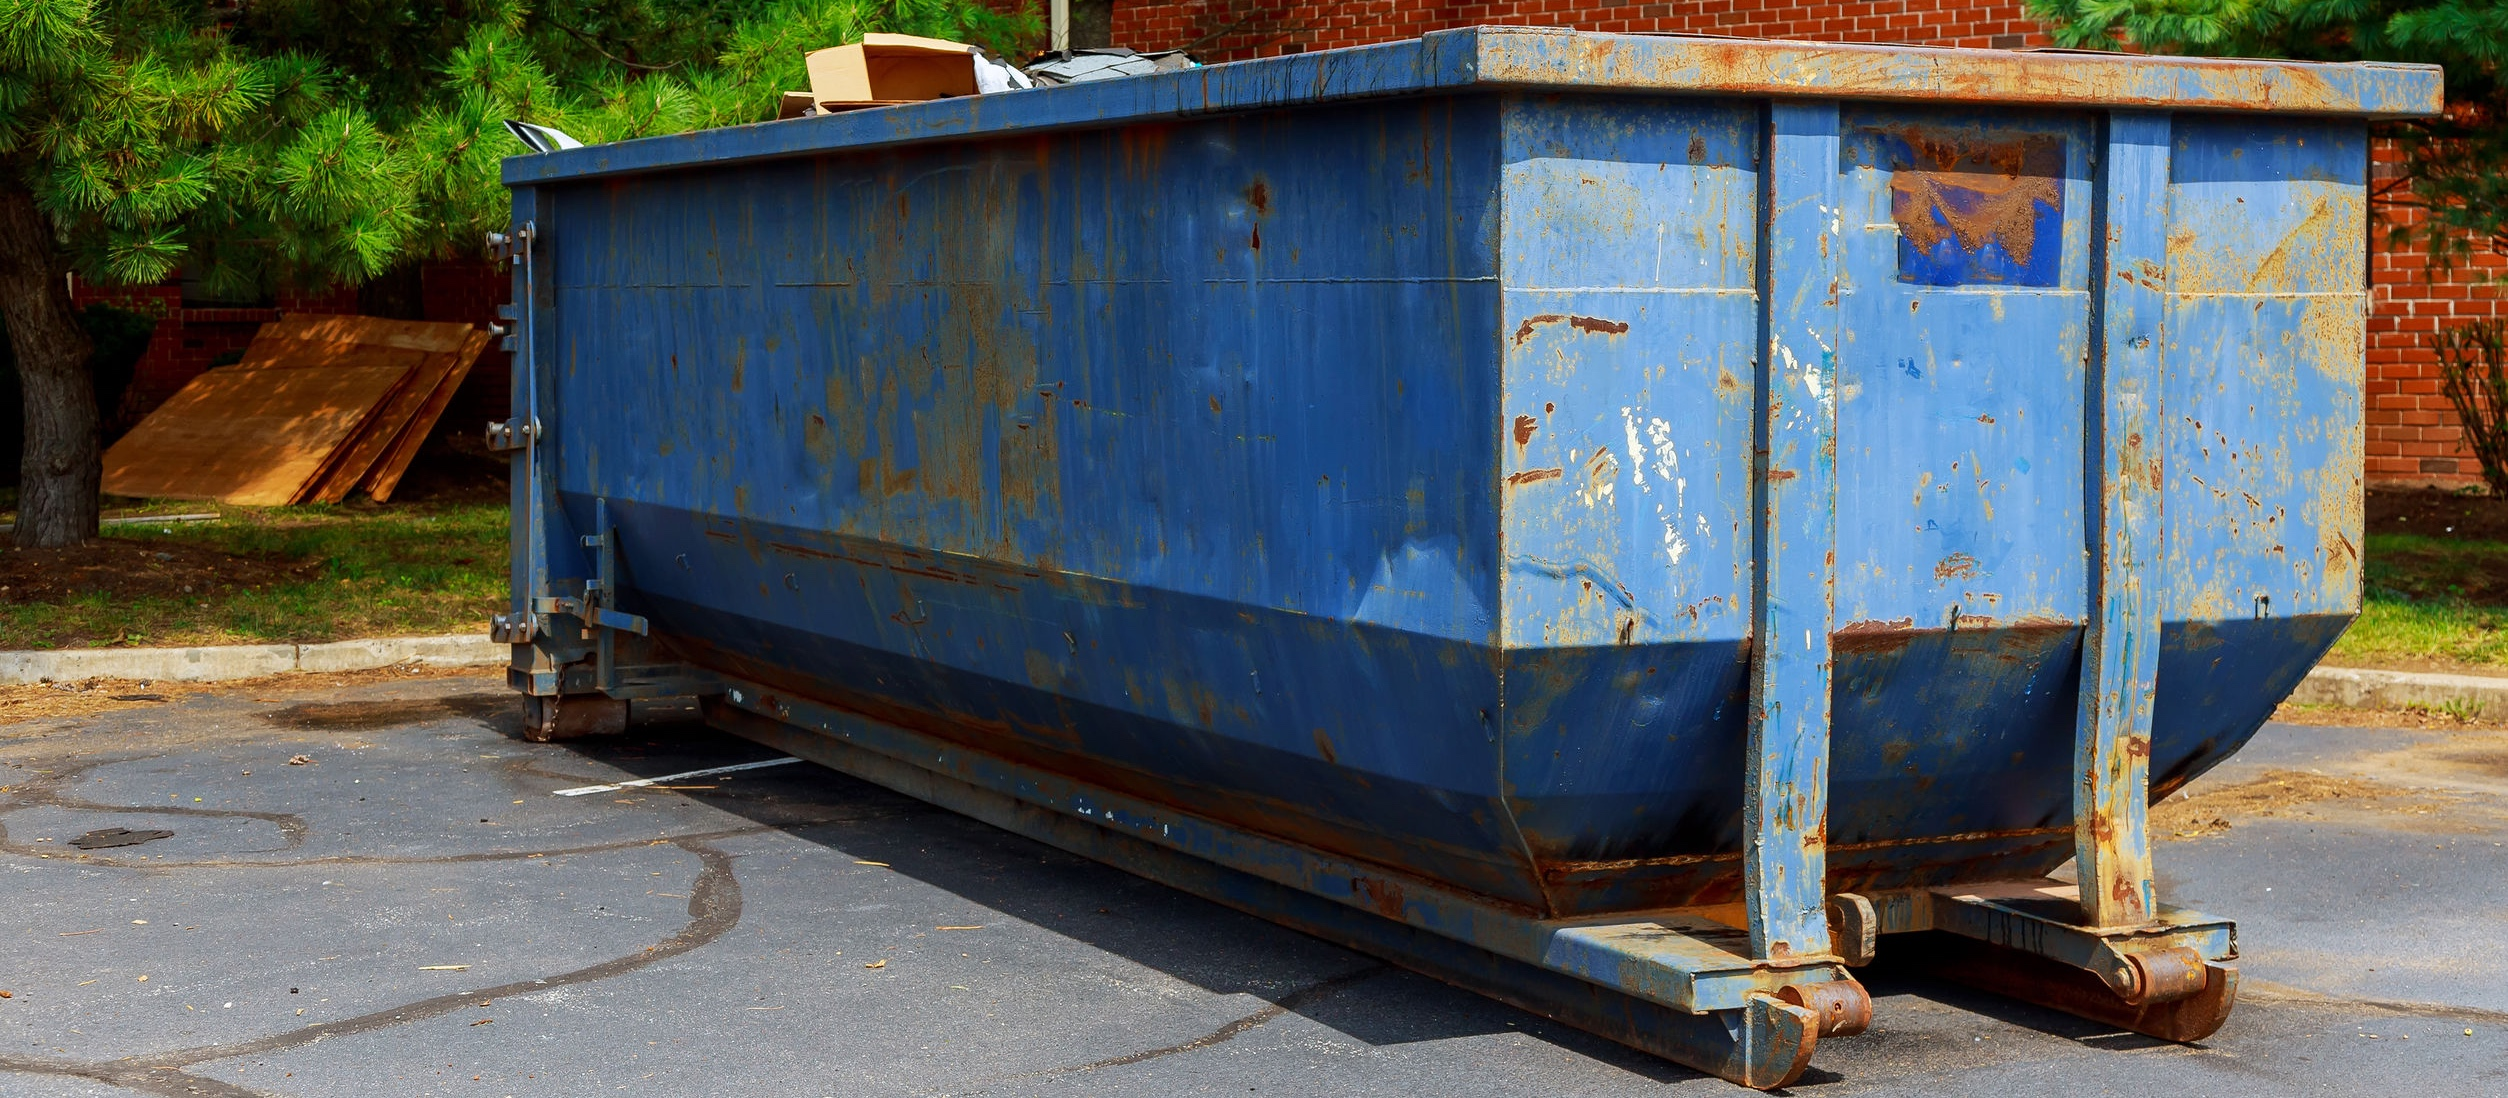 Dumpster outside of a building